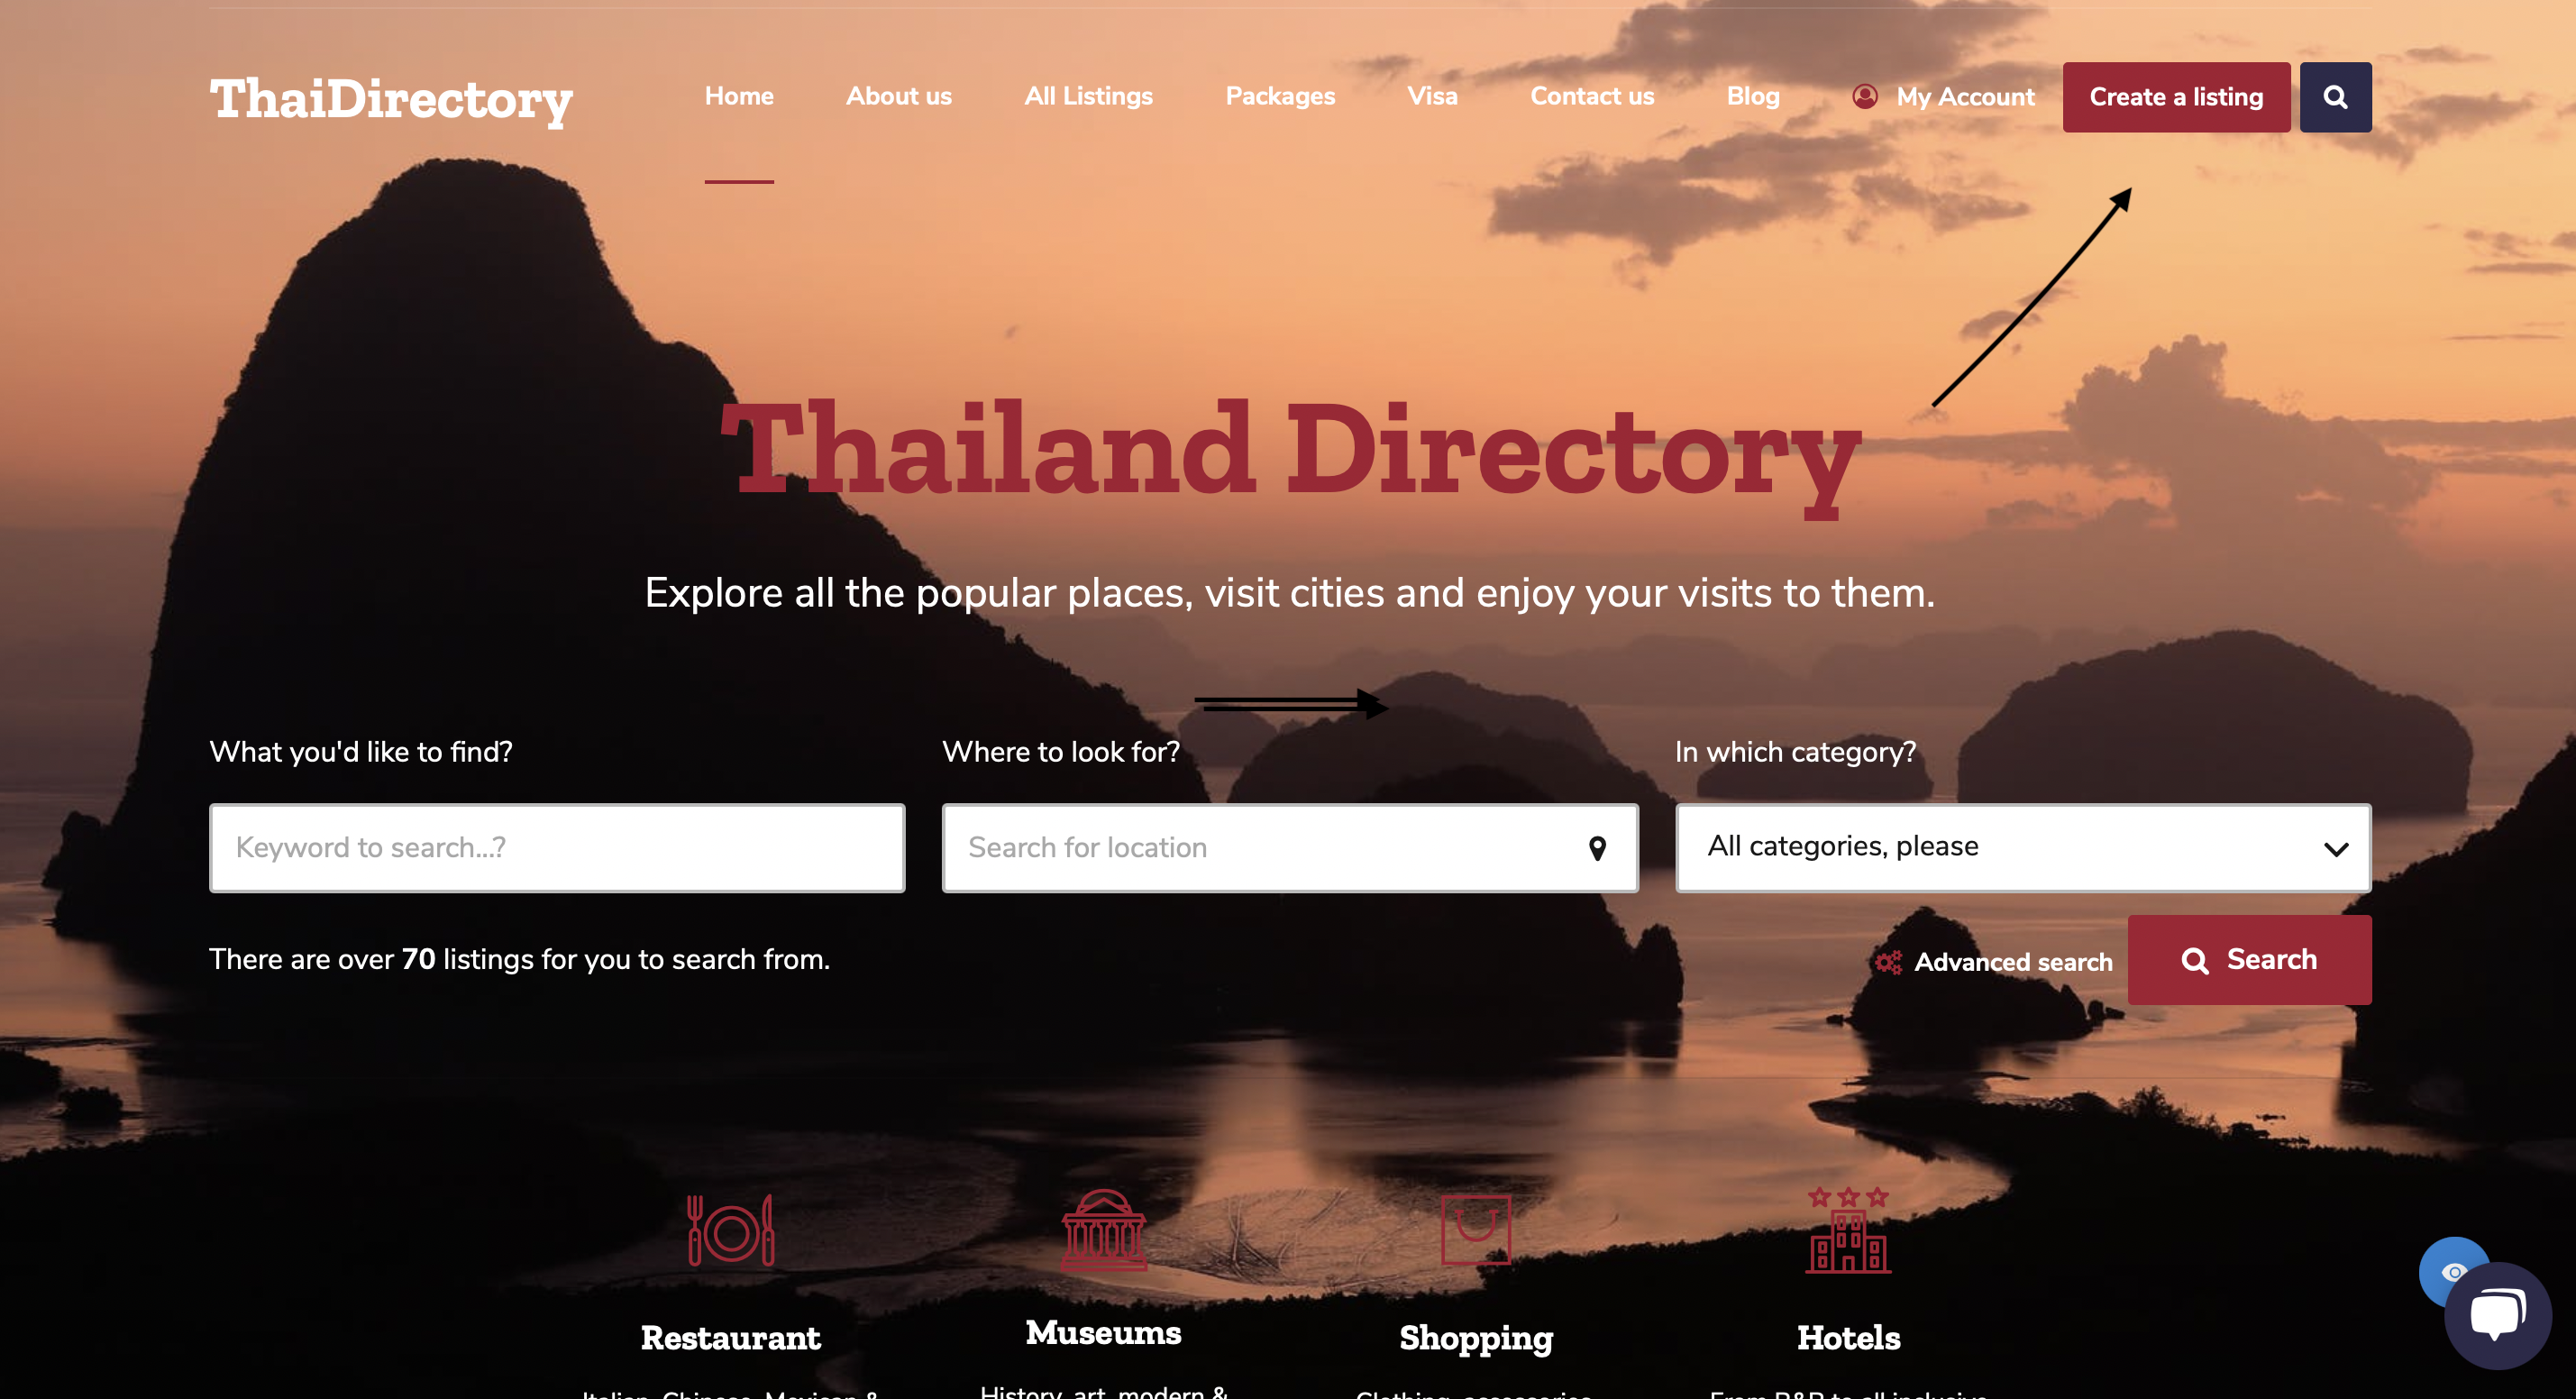 Thailand Directory Startpage - Create a listing